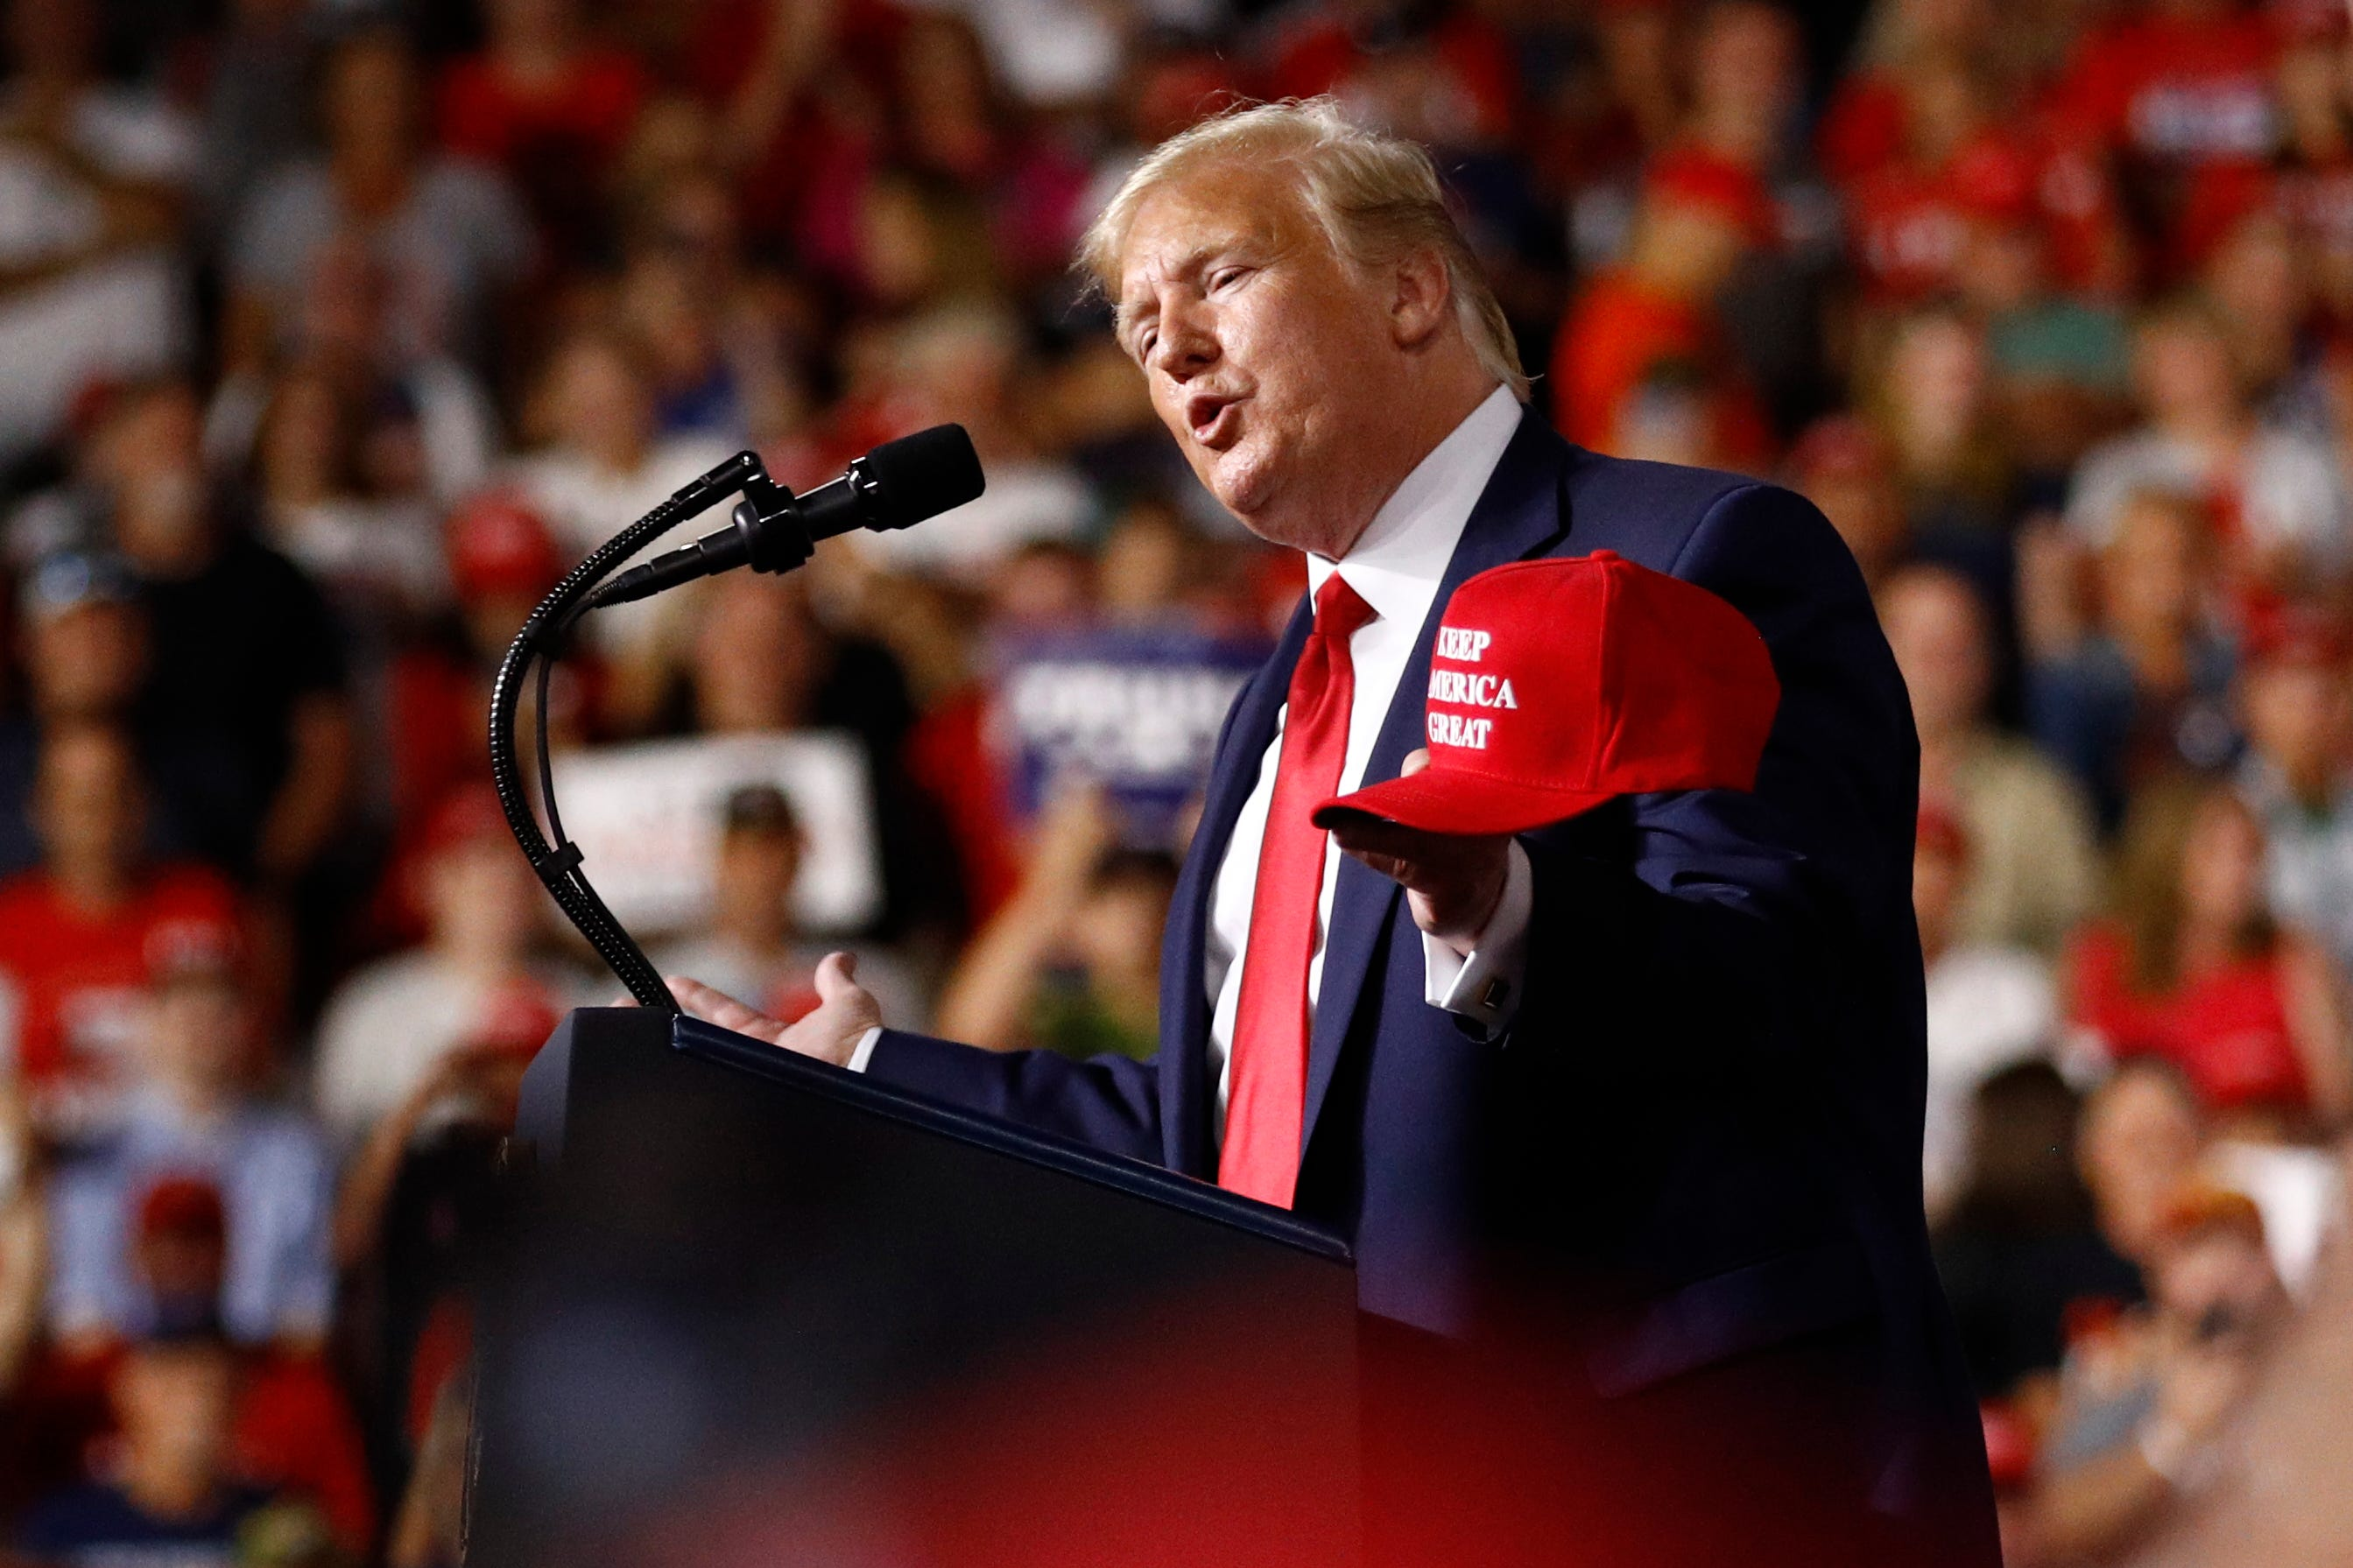 Was Trump ever named Michigan's 'Man of the Year,' as he claims?